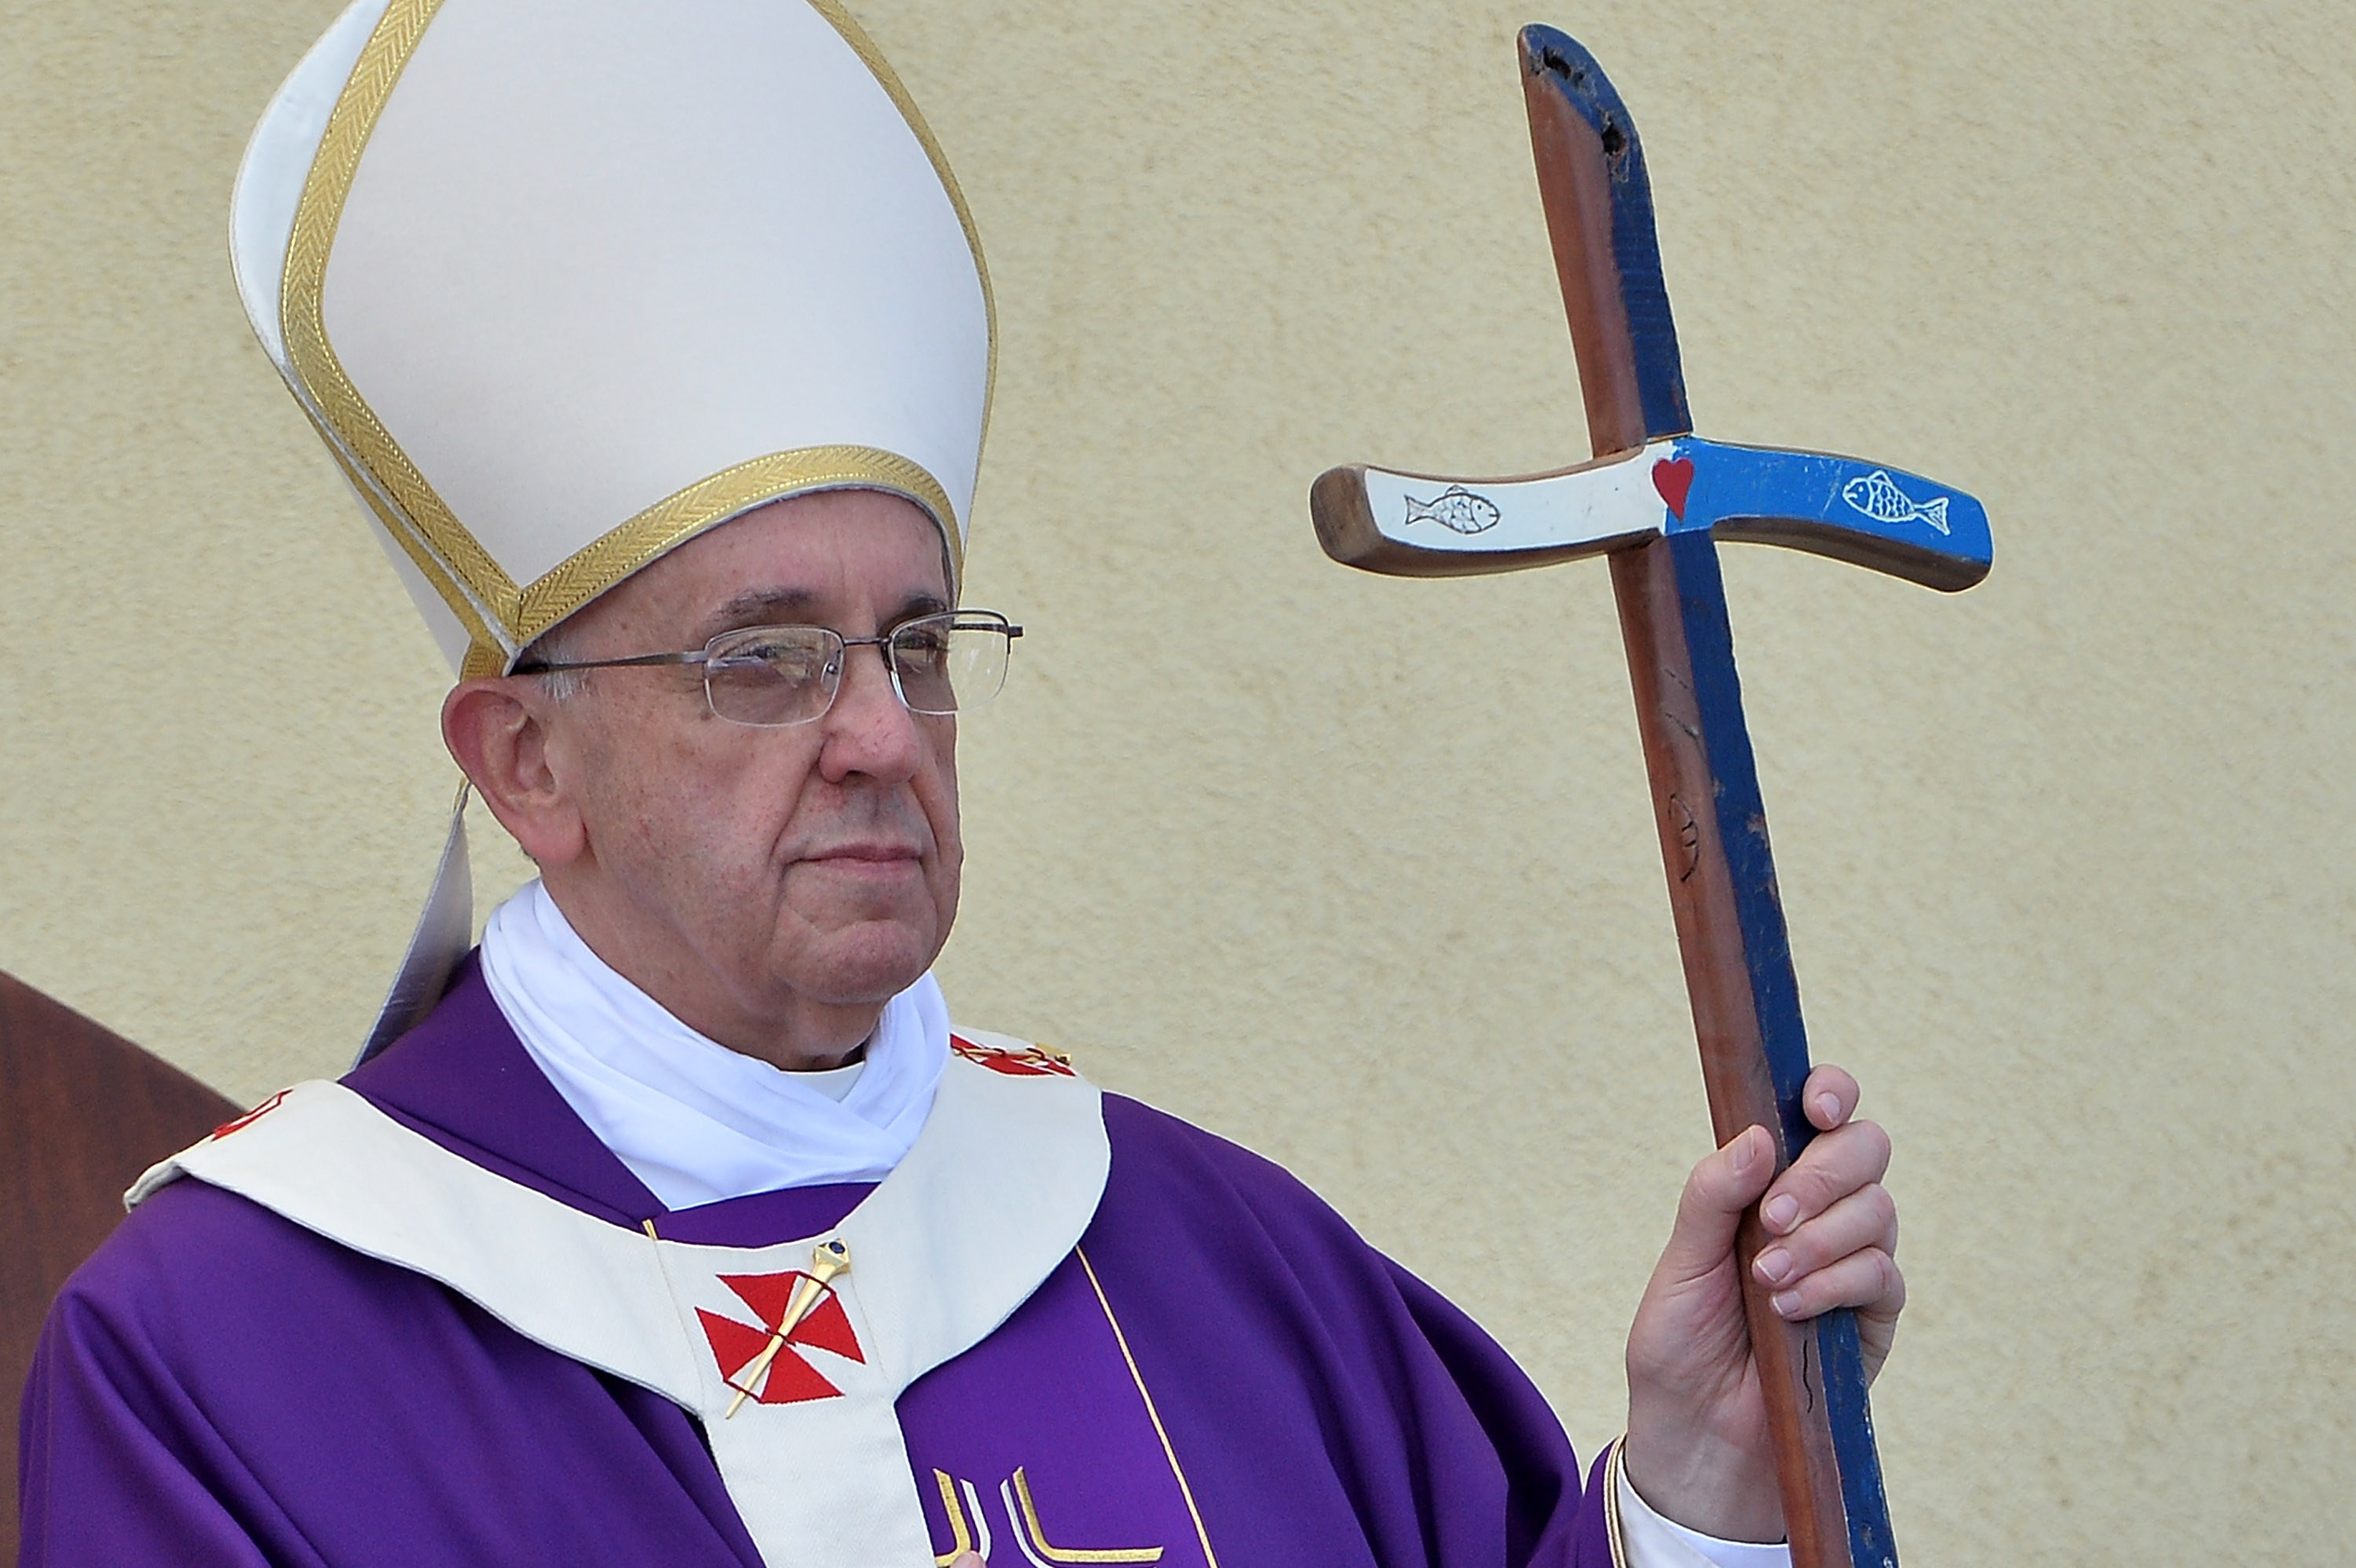 Pope Francis is the 2013 Time Magazine Person of the Year.